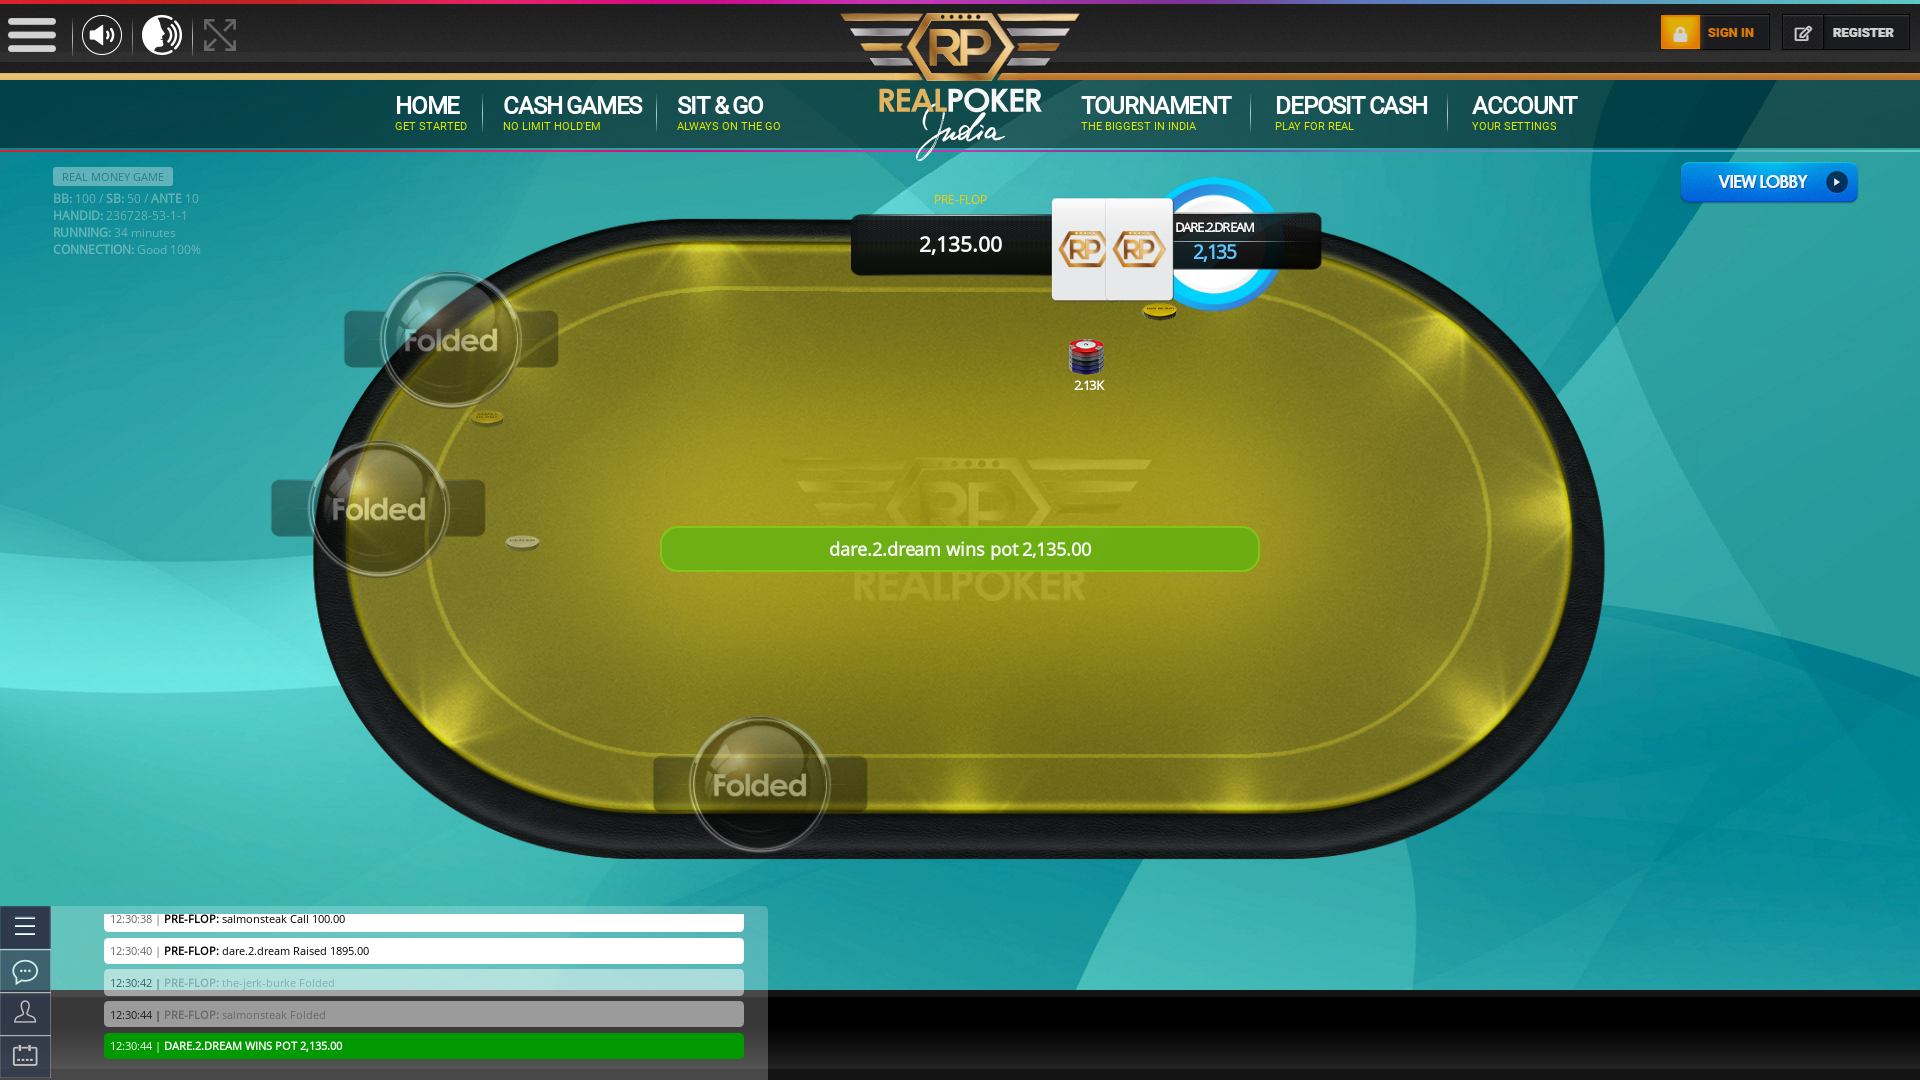 Indian 10 player poker in the 34th minute